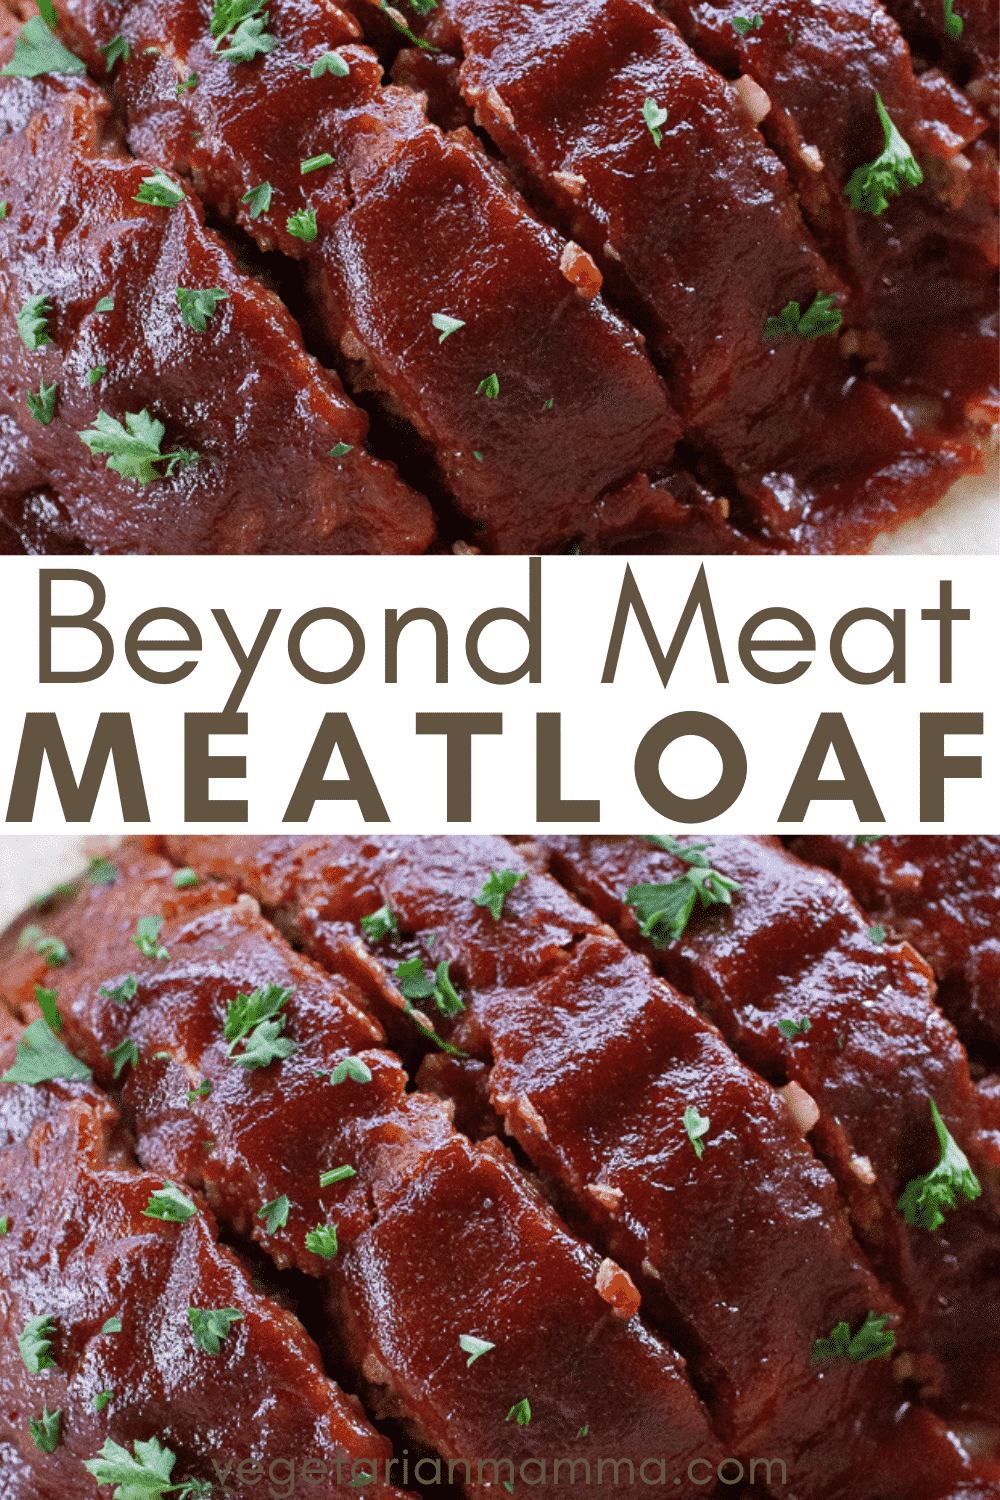 Beyond Meat meatloaf is the vegan comfort food of your dreams! Enjoy all the flavors of a traditional meatloaf with a plant-based protein swap instead of meat. #beyondmeat #beyondmeatmeatloaf #vegetarianmeatloaf